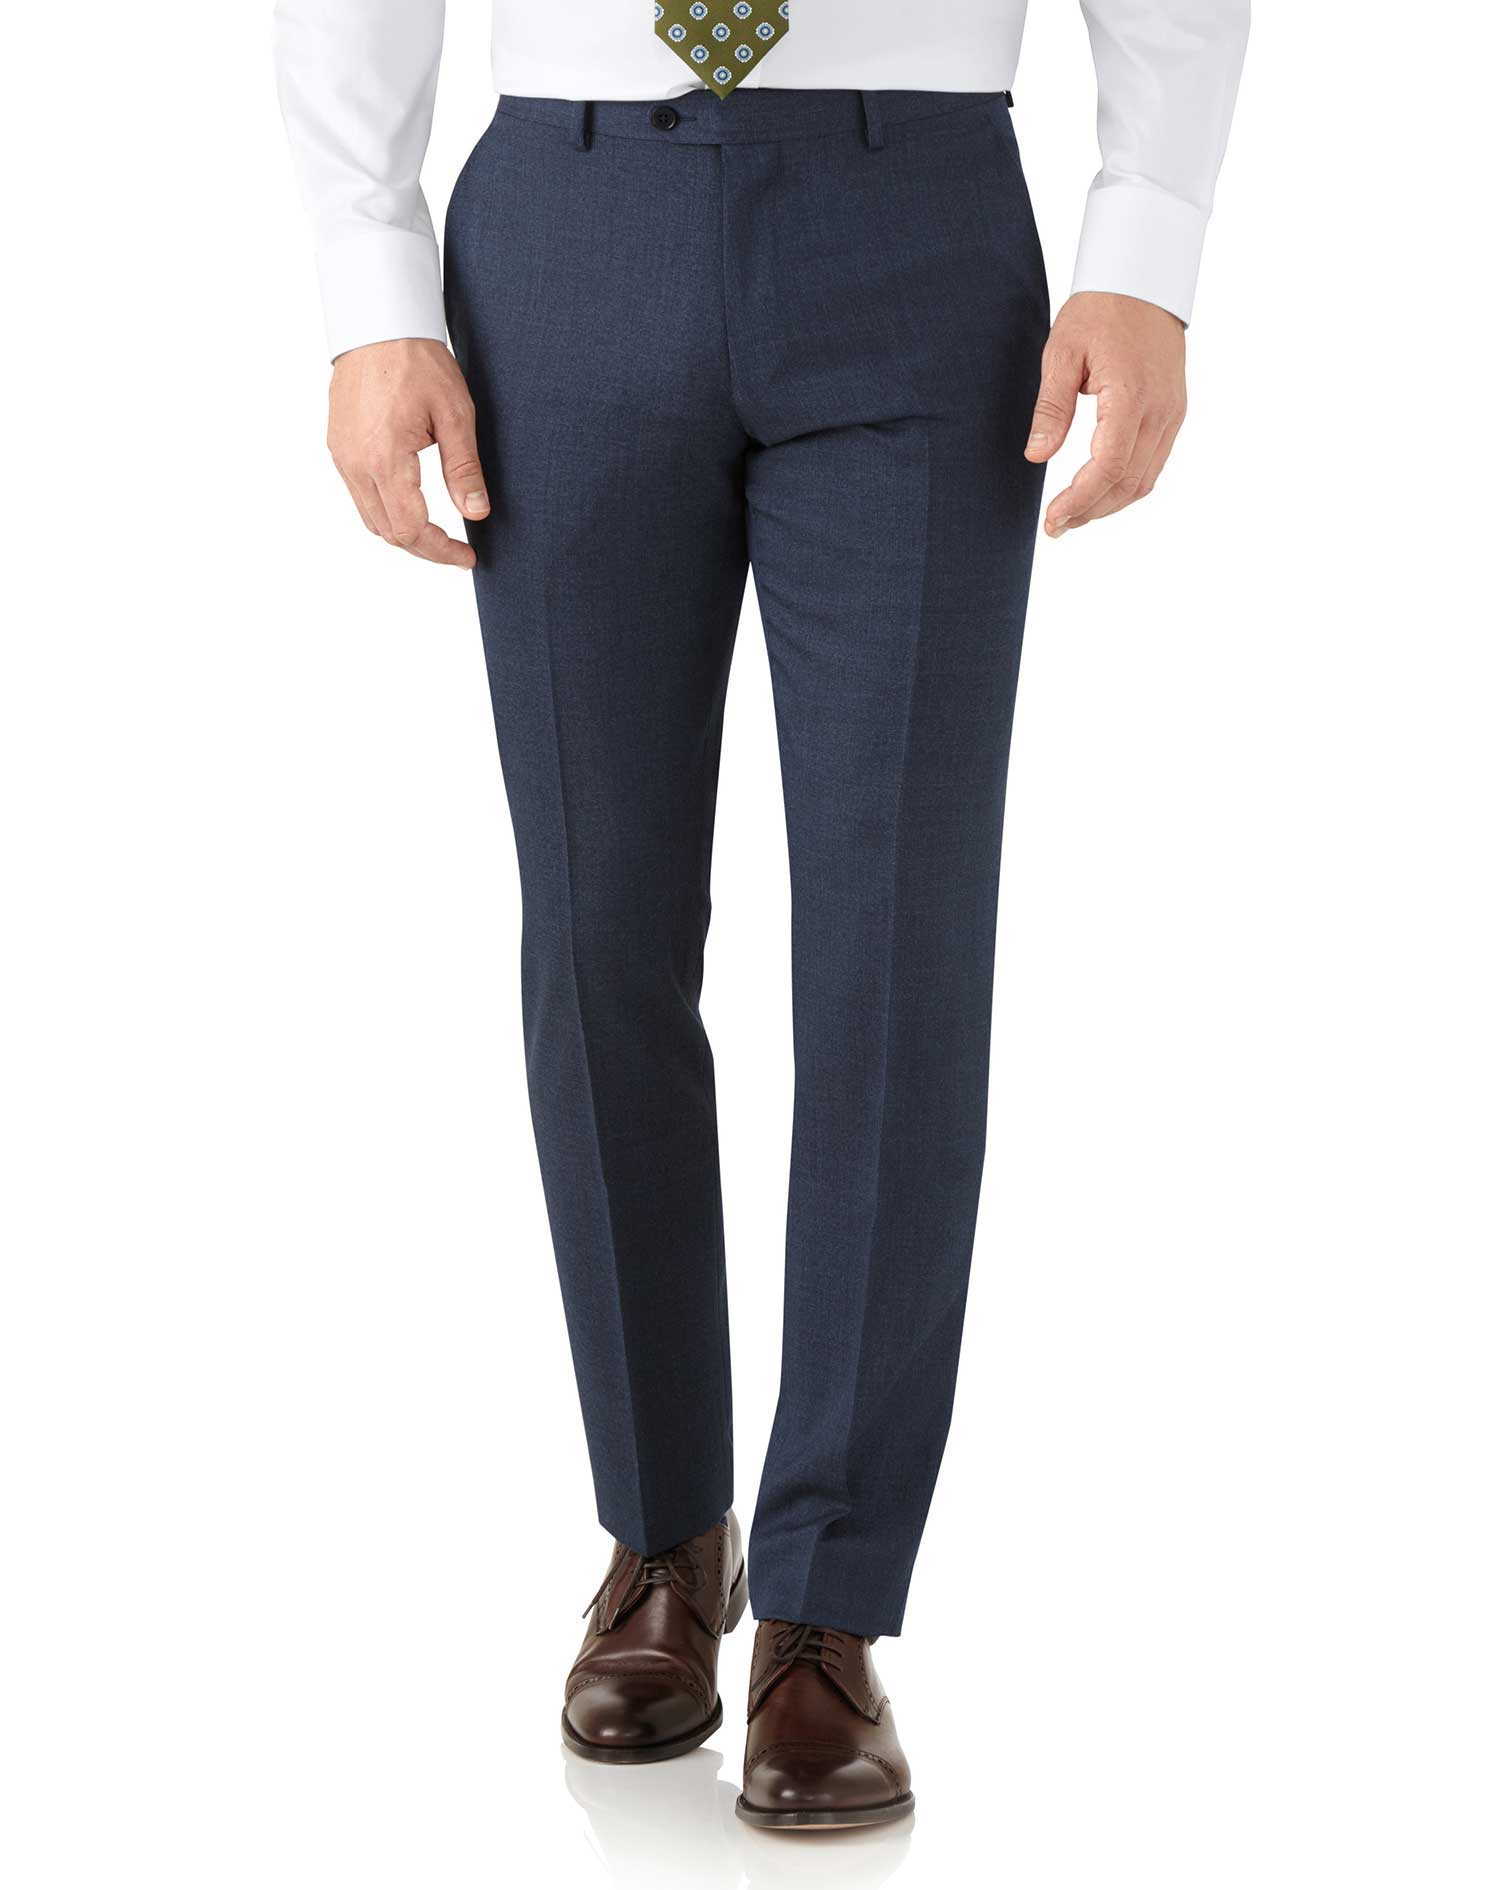 Airforce Blue Slim Fit Hairline Business Suit Trousers Size W38 L34 by Charles Tyrwhitt